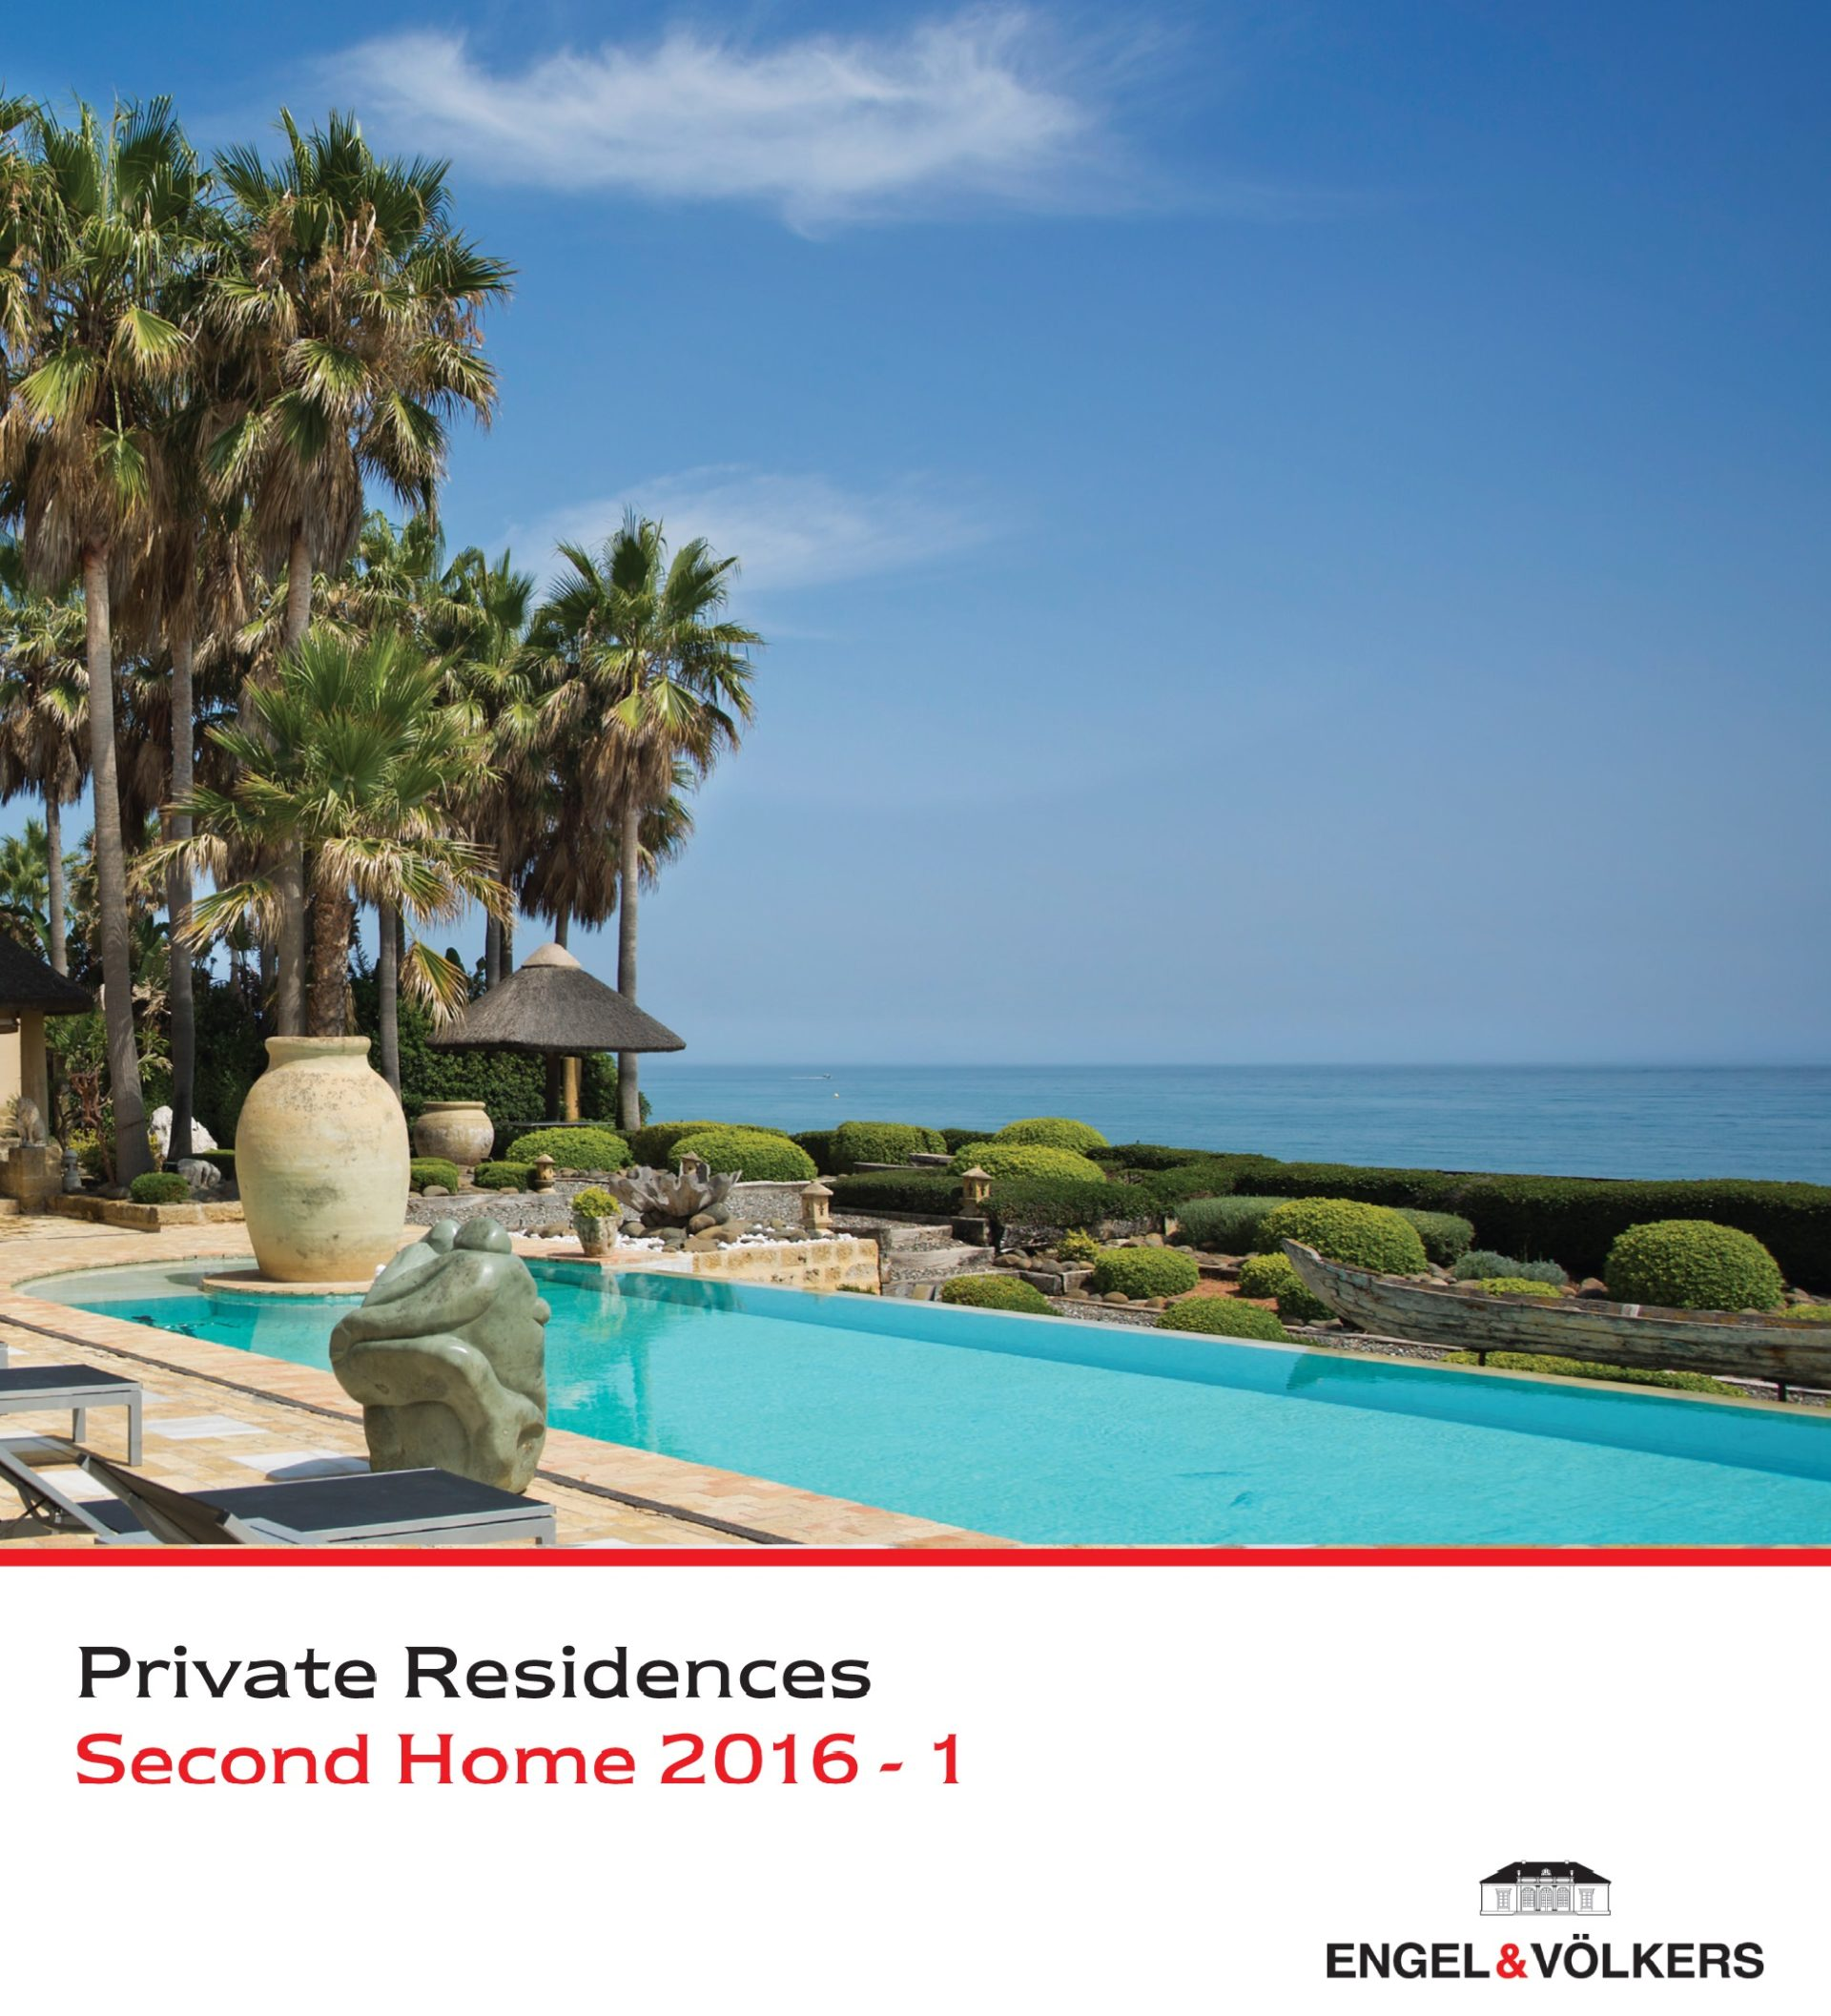 Engel & Volkers Second Home Private Residences 2016 catalogue